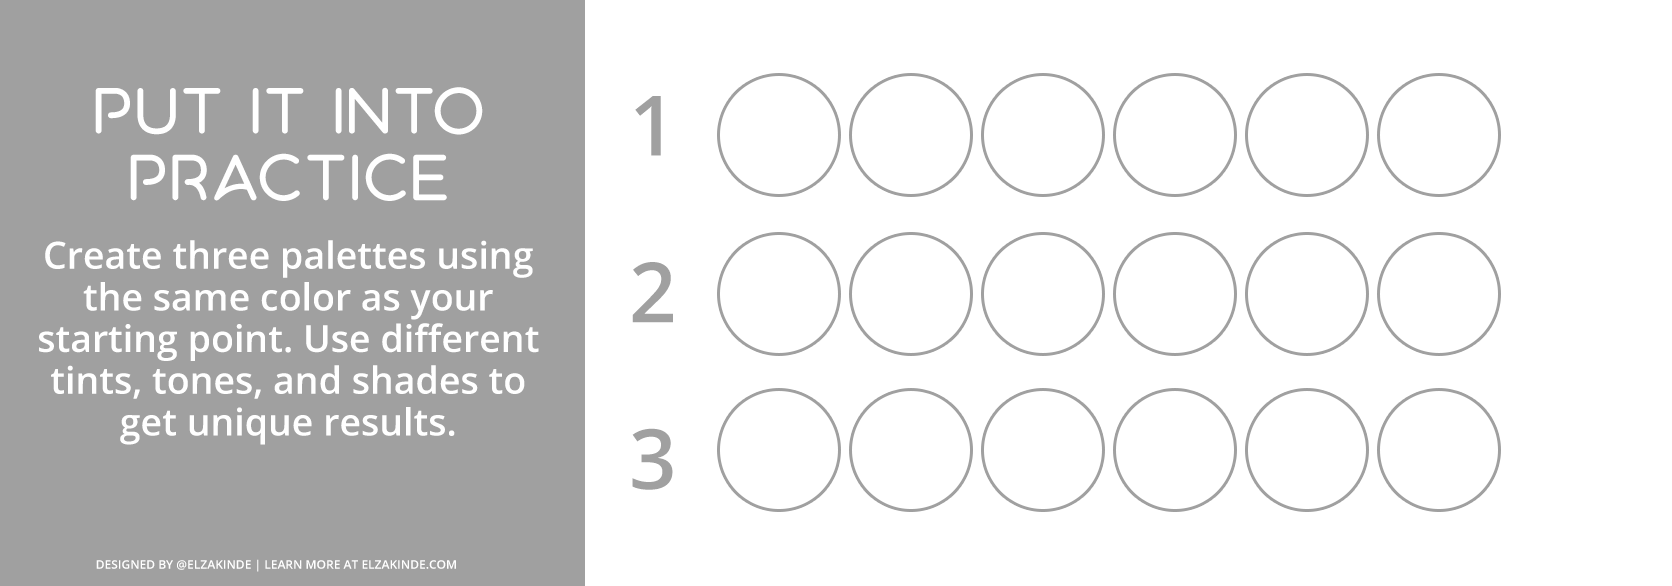 """Graphic features a gray box with text reading """"Put it Into Practice: Create three palettes using the same color as your starting point. Use different tints, tones, and shades to get unique results."""" To the right, three sets of 6 blank circles allow you to create your own palettes."""